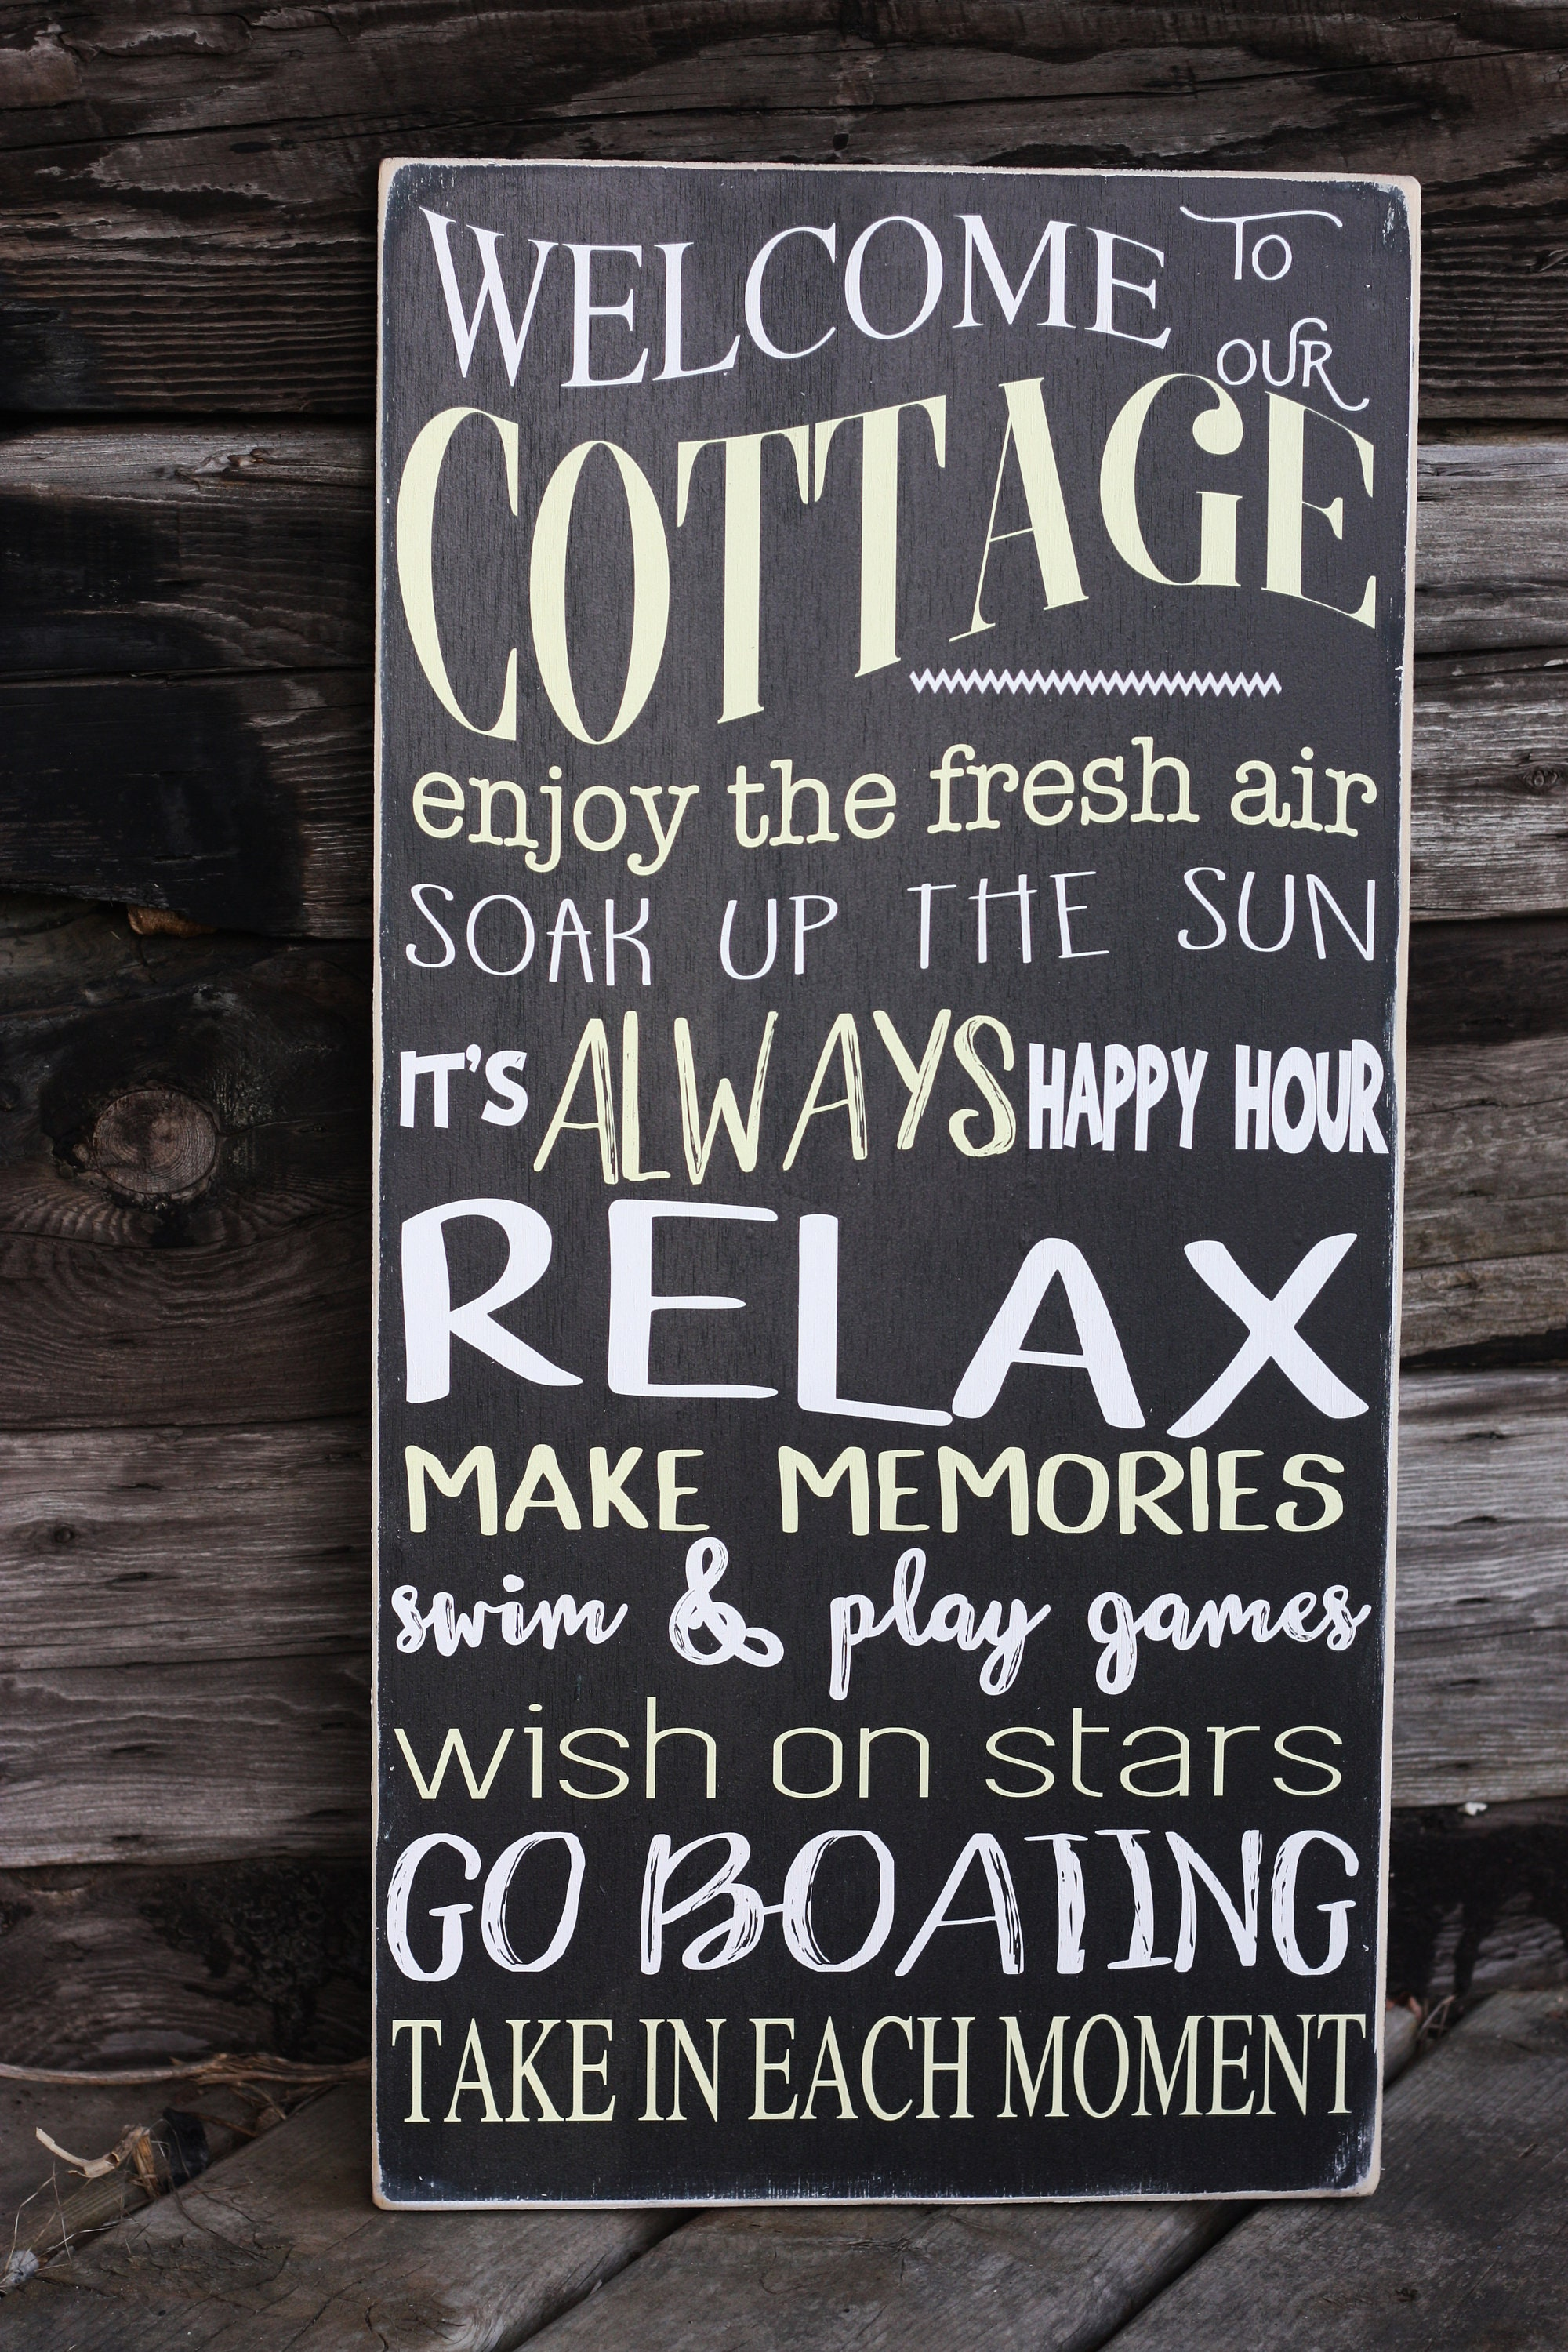 Cottage Rules Sign Welcome To Our Cottage Cotrage Rules